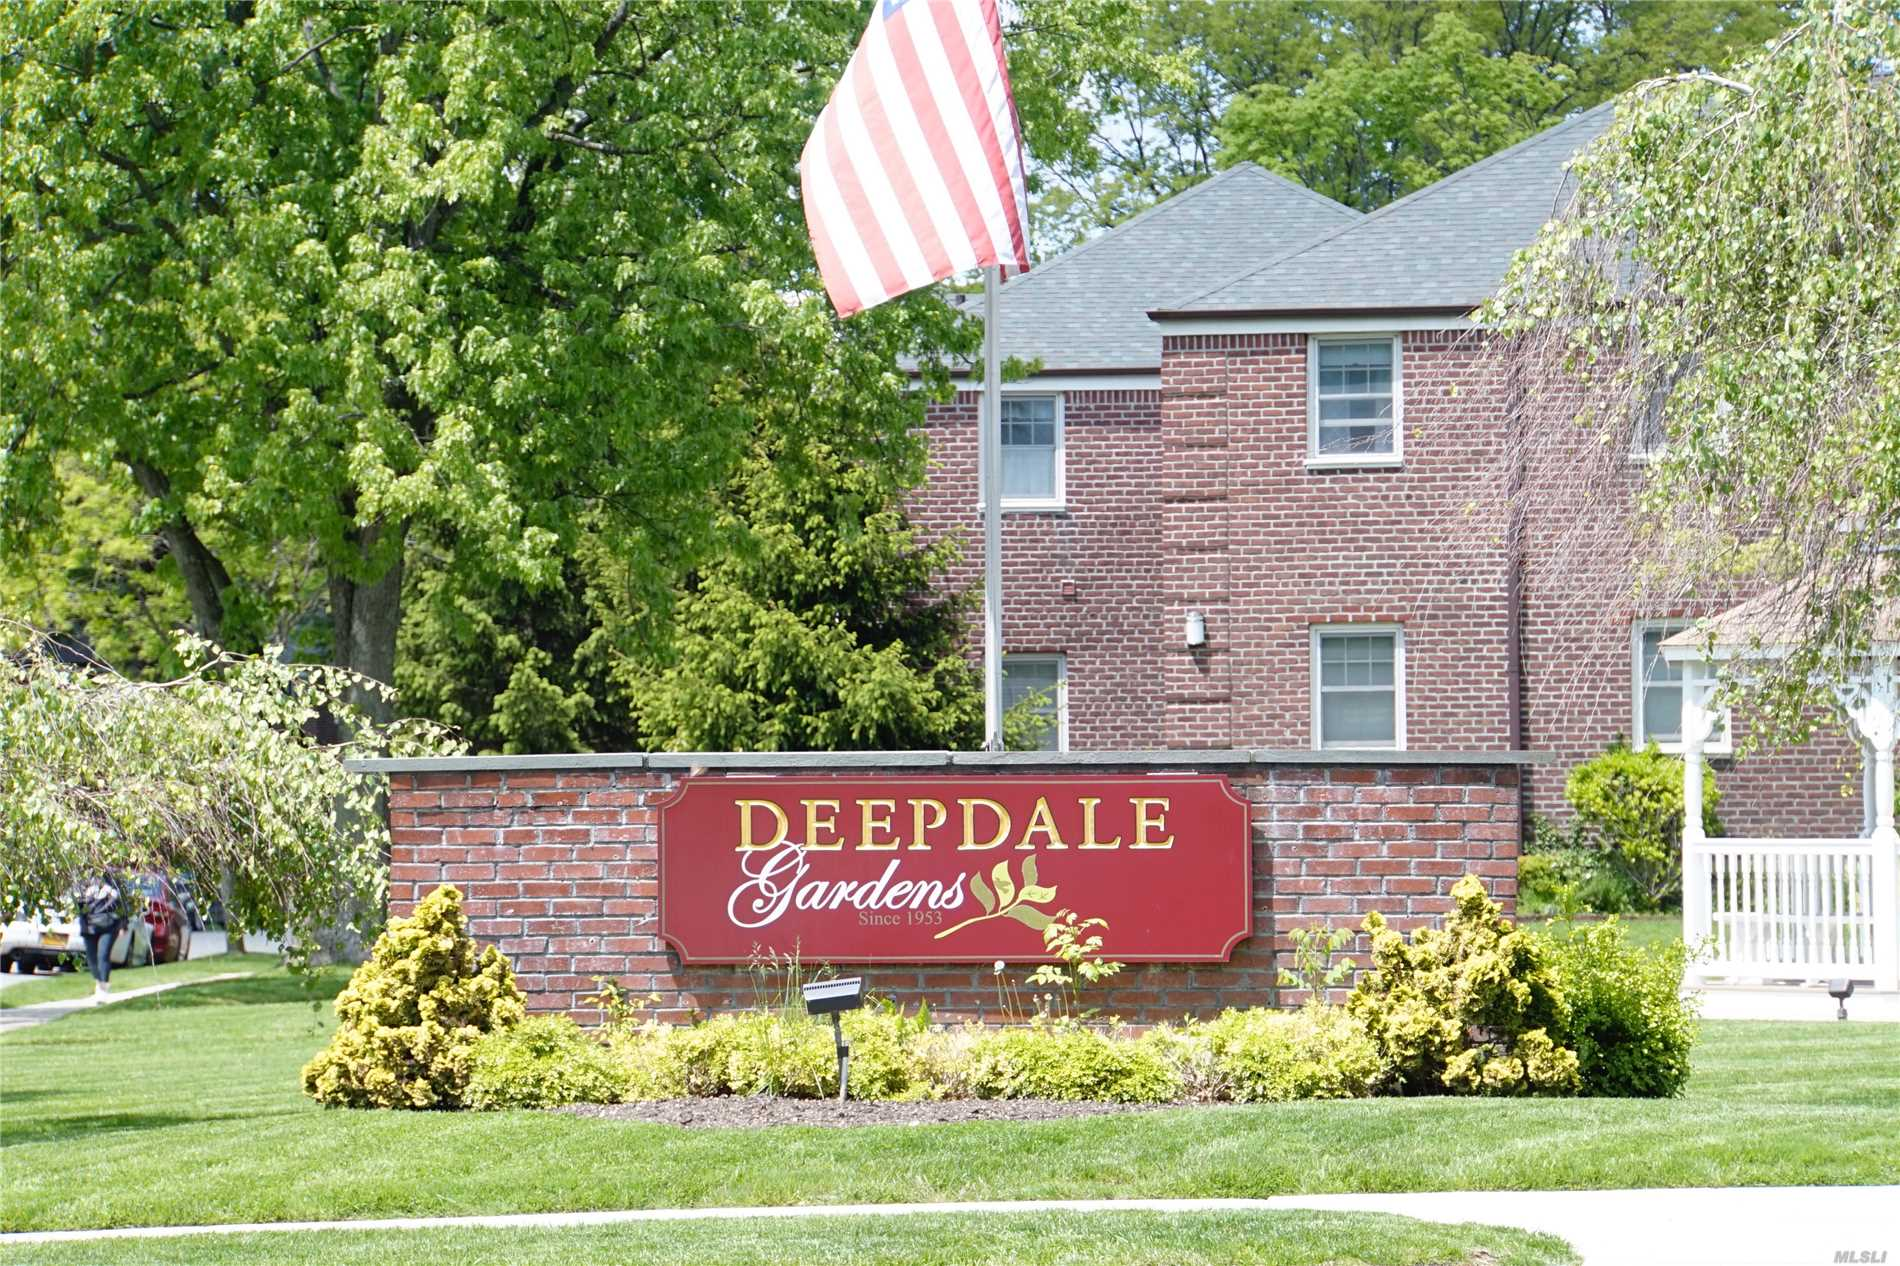 Exceptional Clean & Mint Condition 3 Bedrm with Separated Dining room Unit in Deepdale Gardens. Totally Renovated Kitchen&Bath, New Wood floor, New Ceiling lights, Quiet Unit located at inside of the Courtyard, All Utilities included, Washer&Dryer installed. 3 Car Parking Allowed.